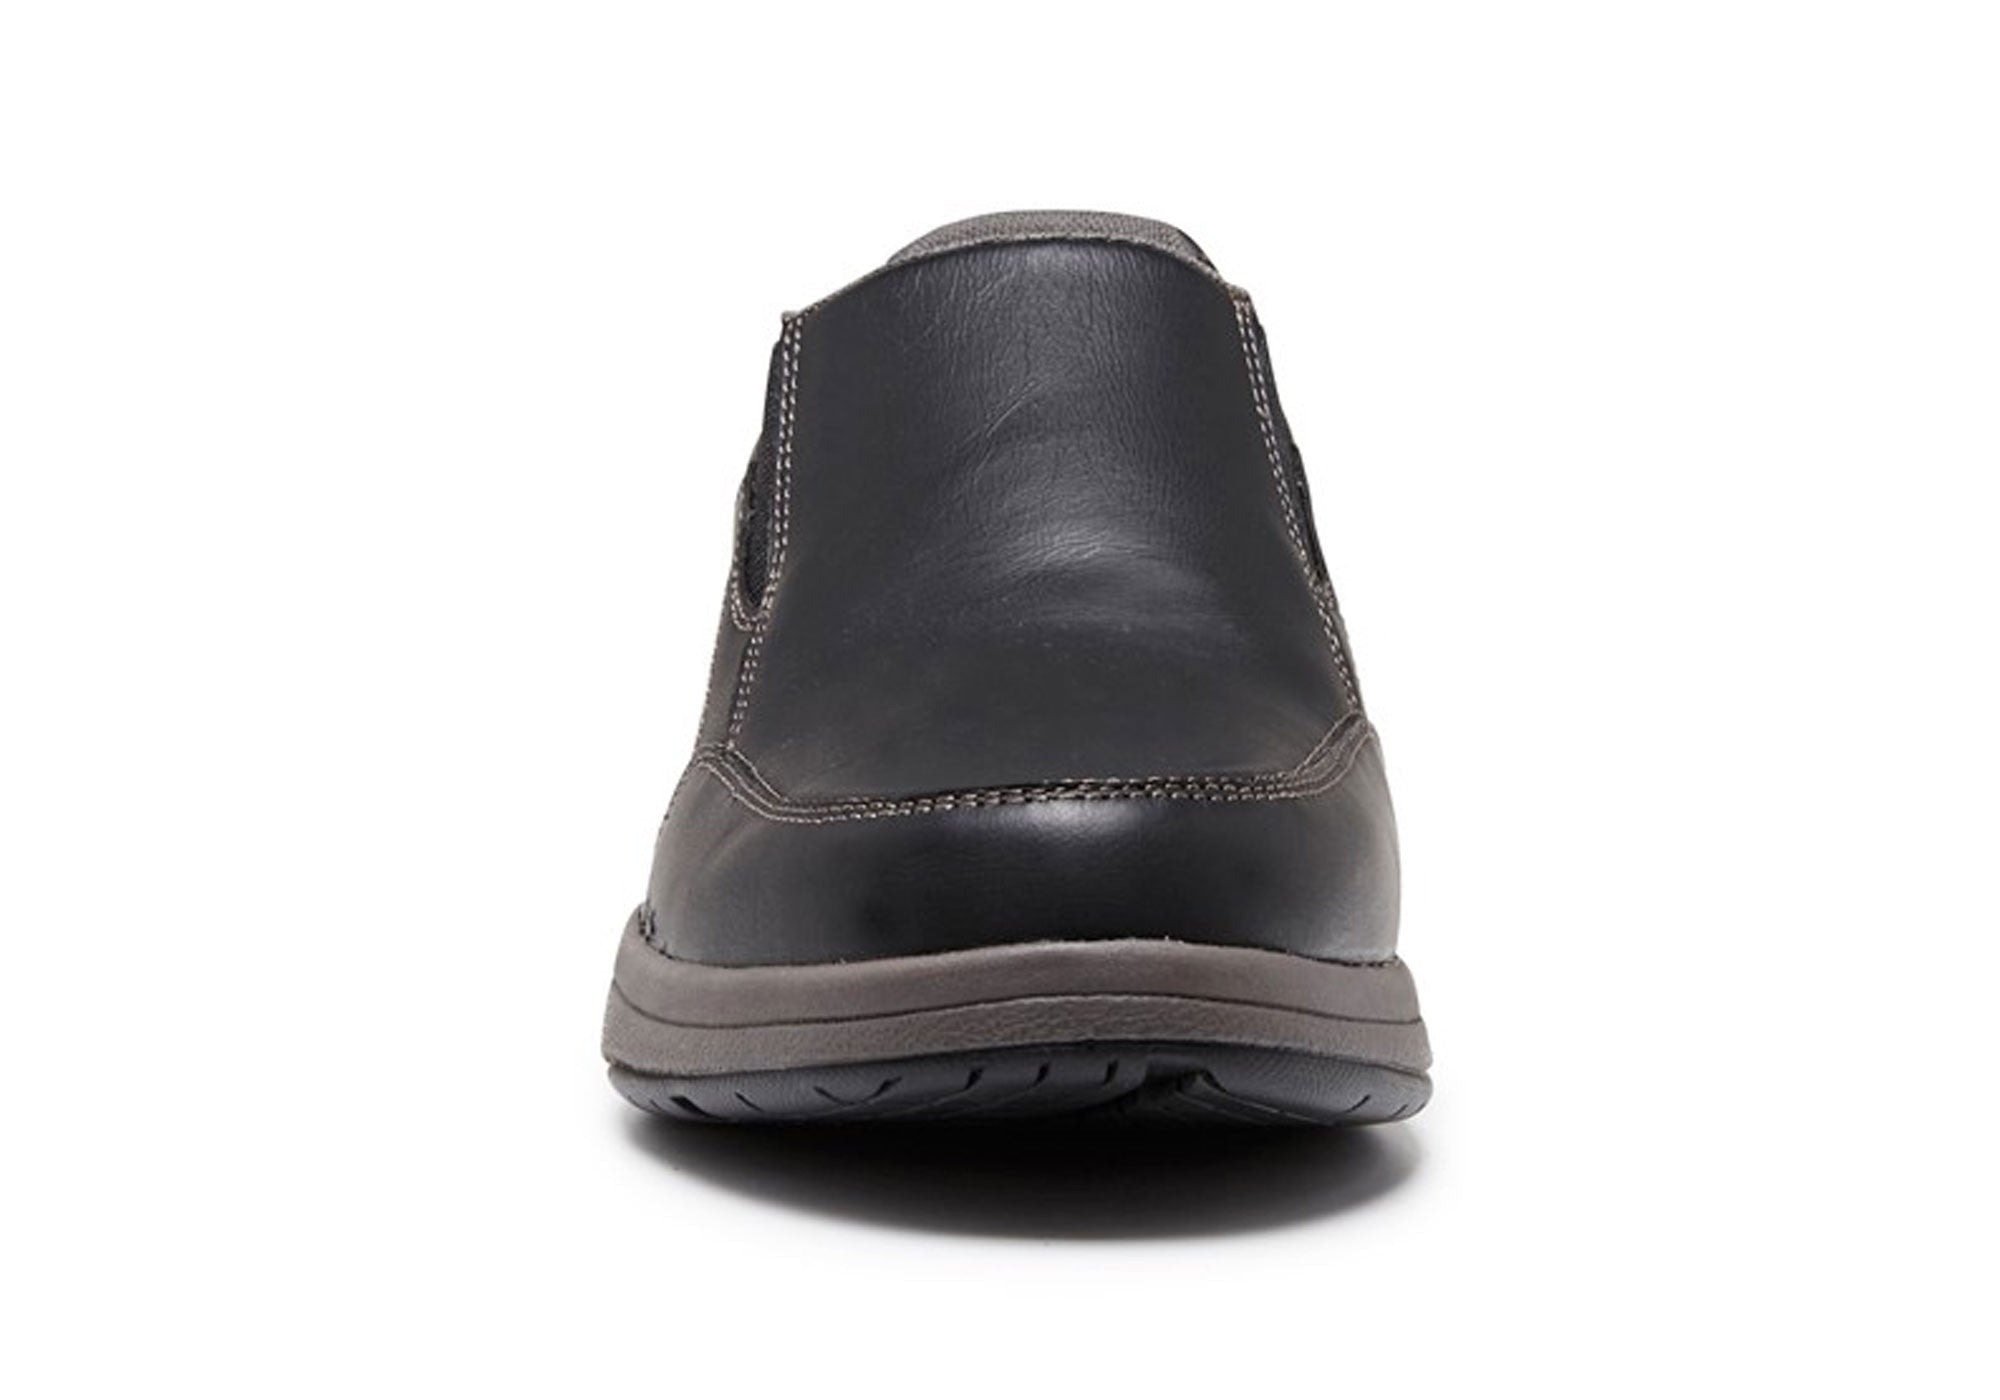 Hush Puppies Loan Mens Slip On Comfort Shoes